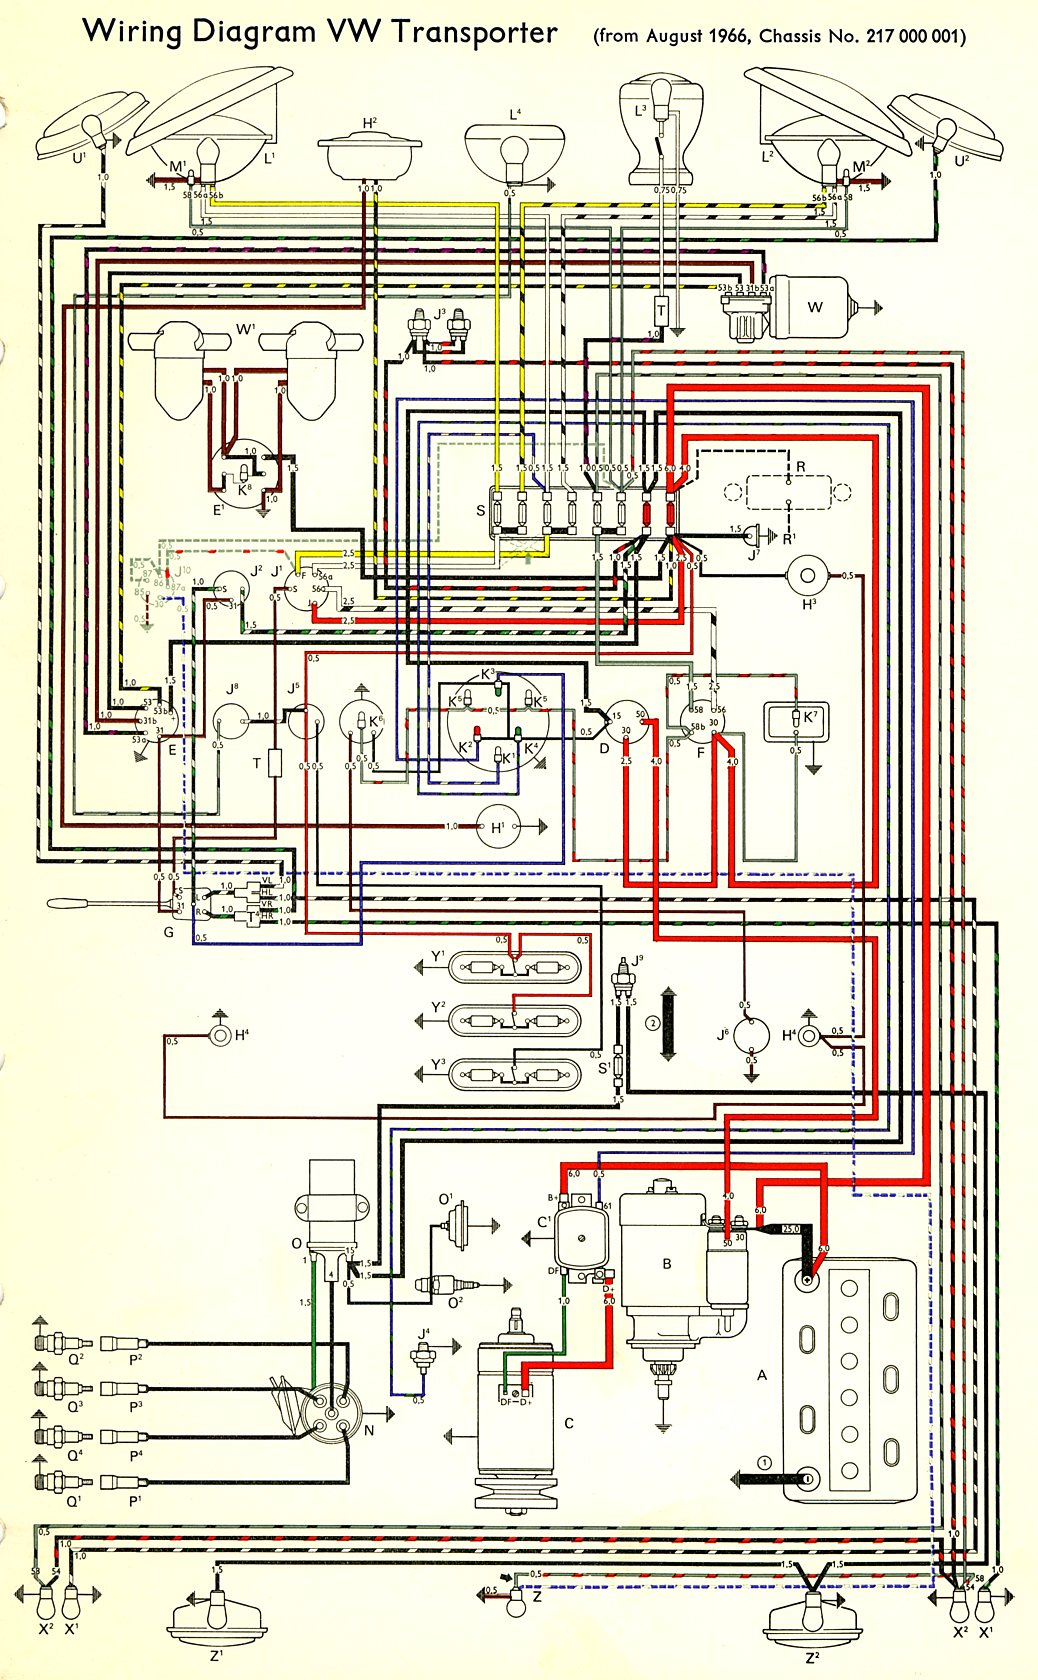 vw wiring diagram alternator yamaha tach 1967 bus | thegoldenbug.com